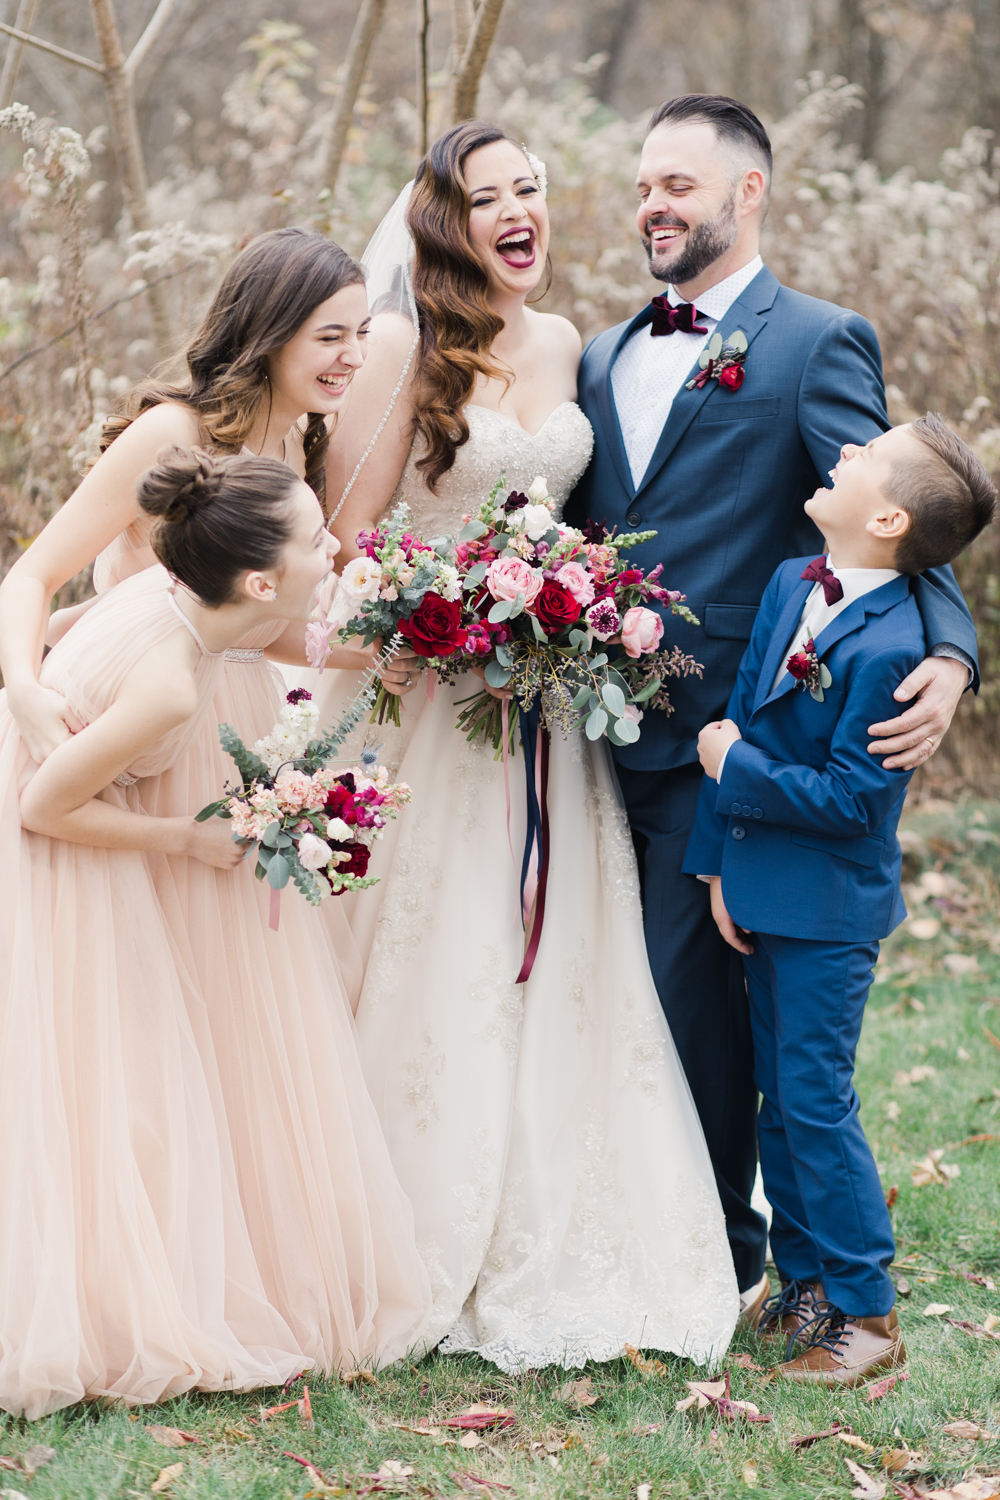 Couple and family having fun during wedding day portraits. Beautifully composed images is compelling.